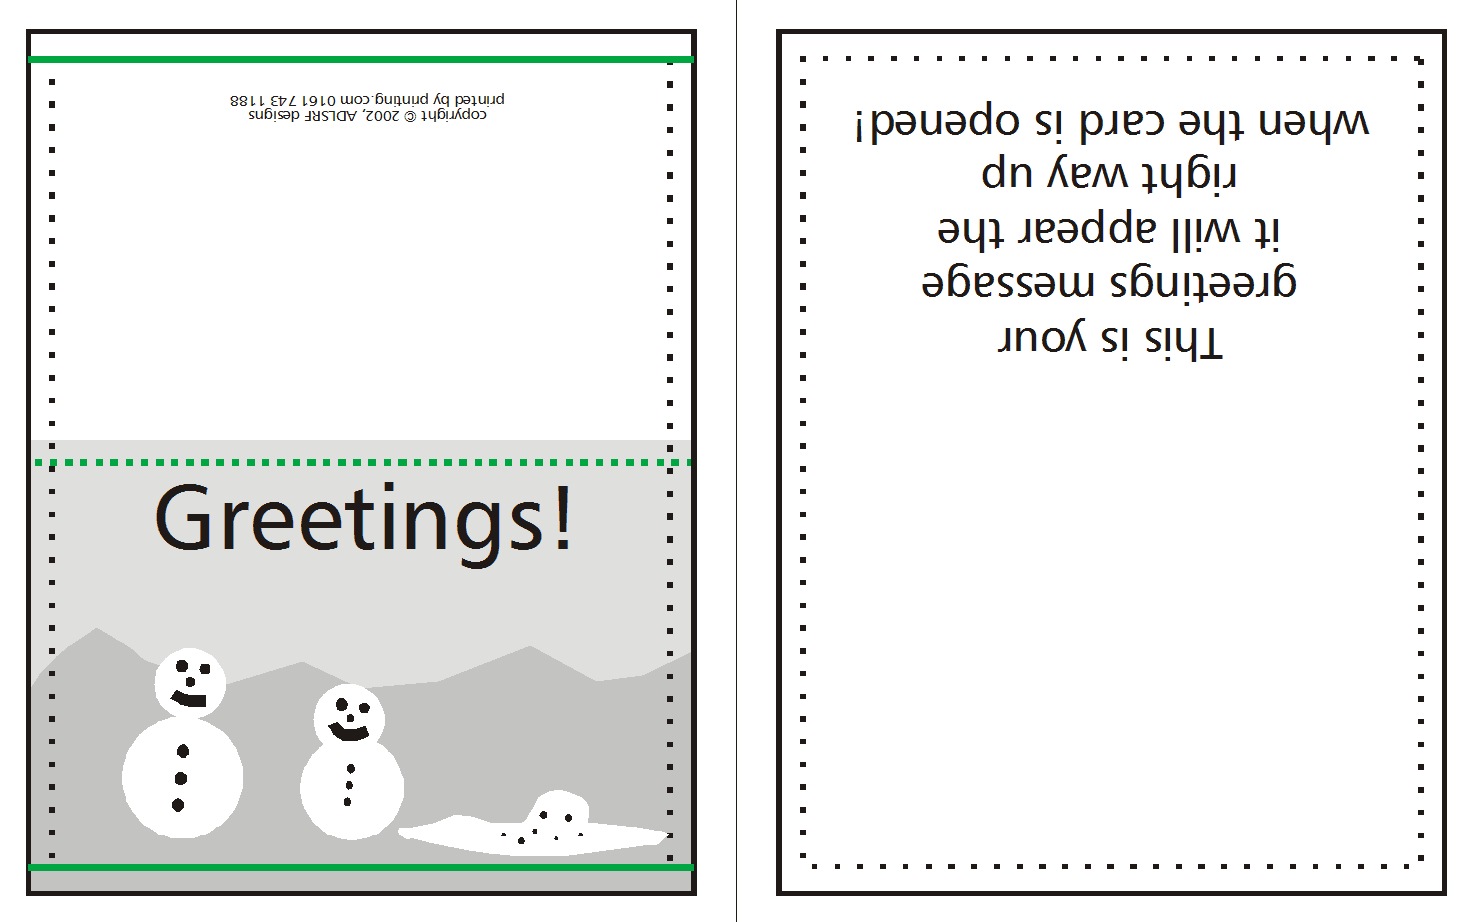 010 Printable Greeting Card Templates Gc Land Template Throughout Birthday Card Template Indesign